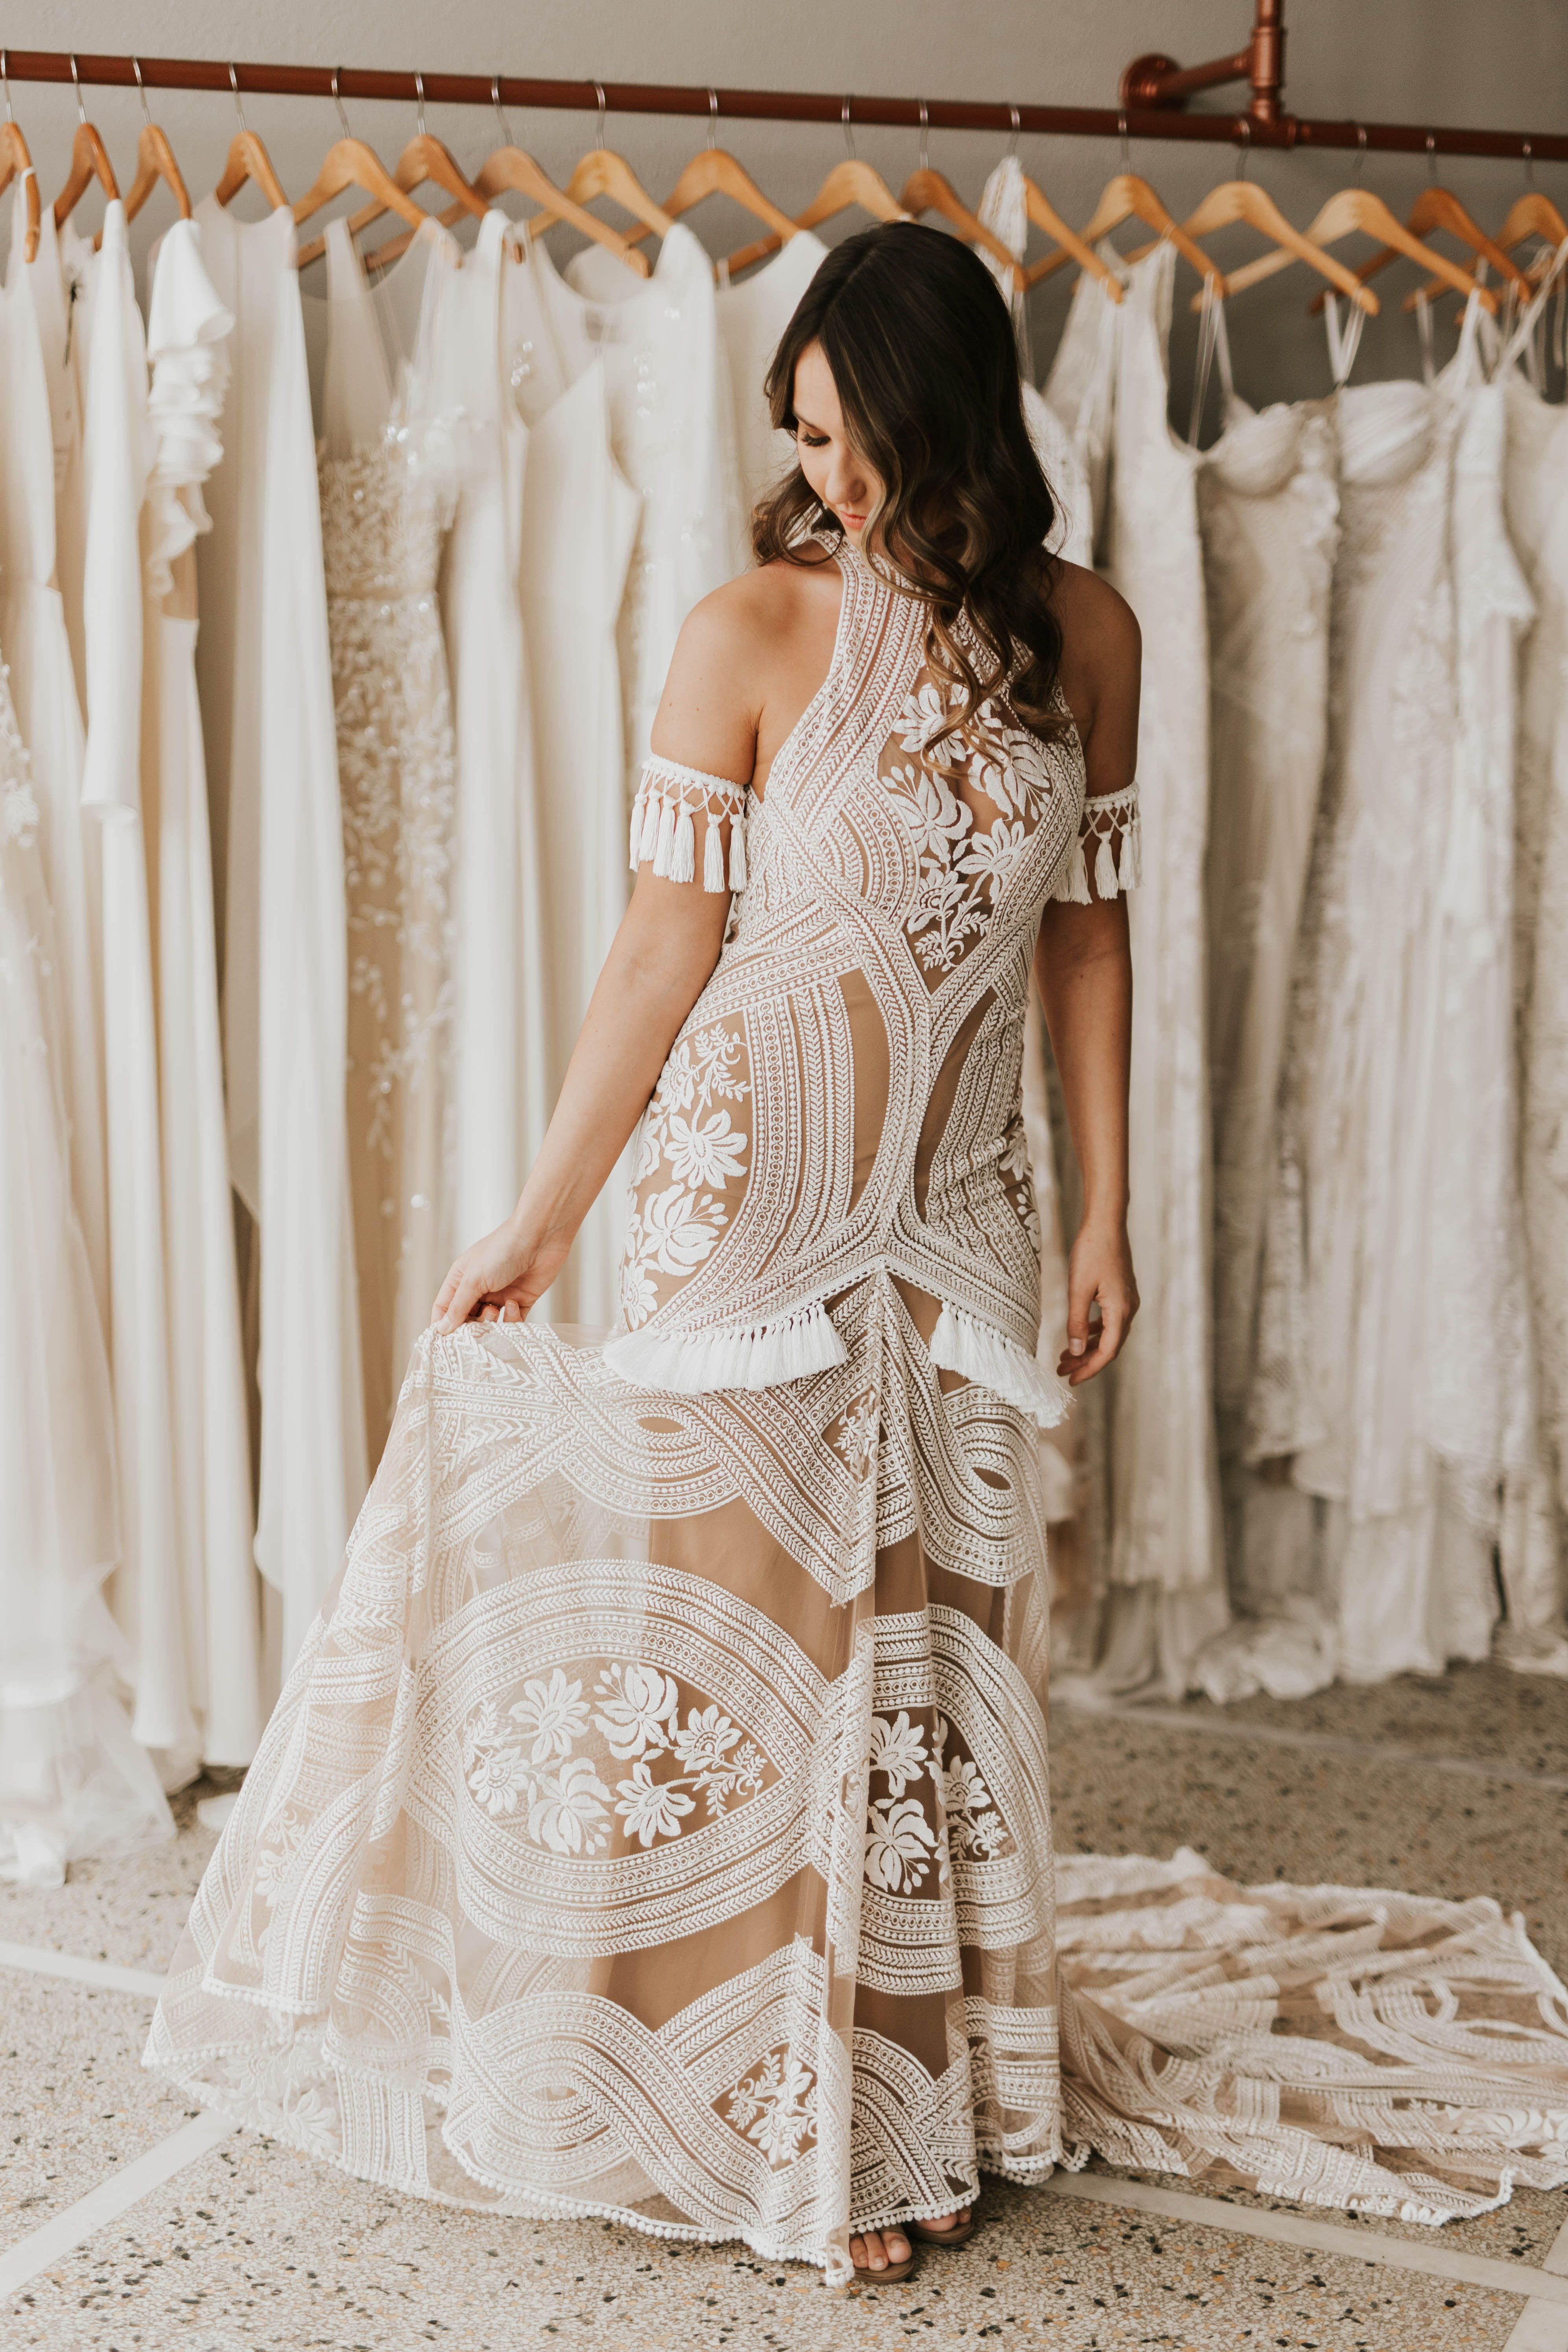 East By Rue De Seine Available At Minneapolis Dallas Denver Miami A Be Bridal Shops High Ne Amazing Wedding Dress Wedding Dresses Dream Wedding Dresses